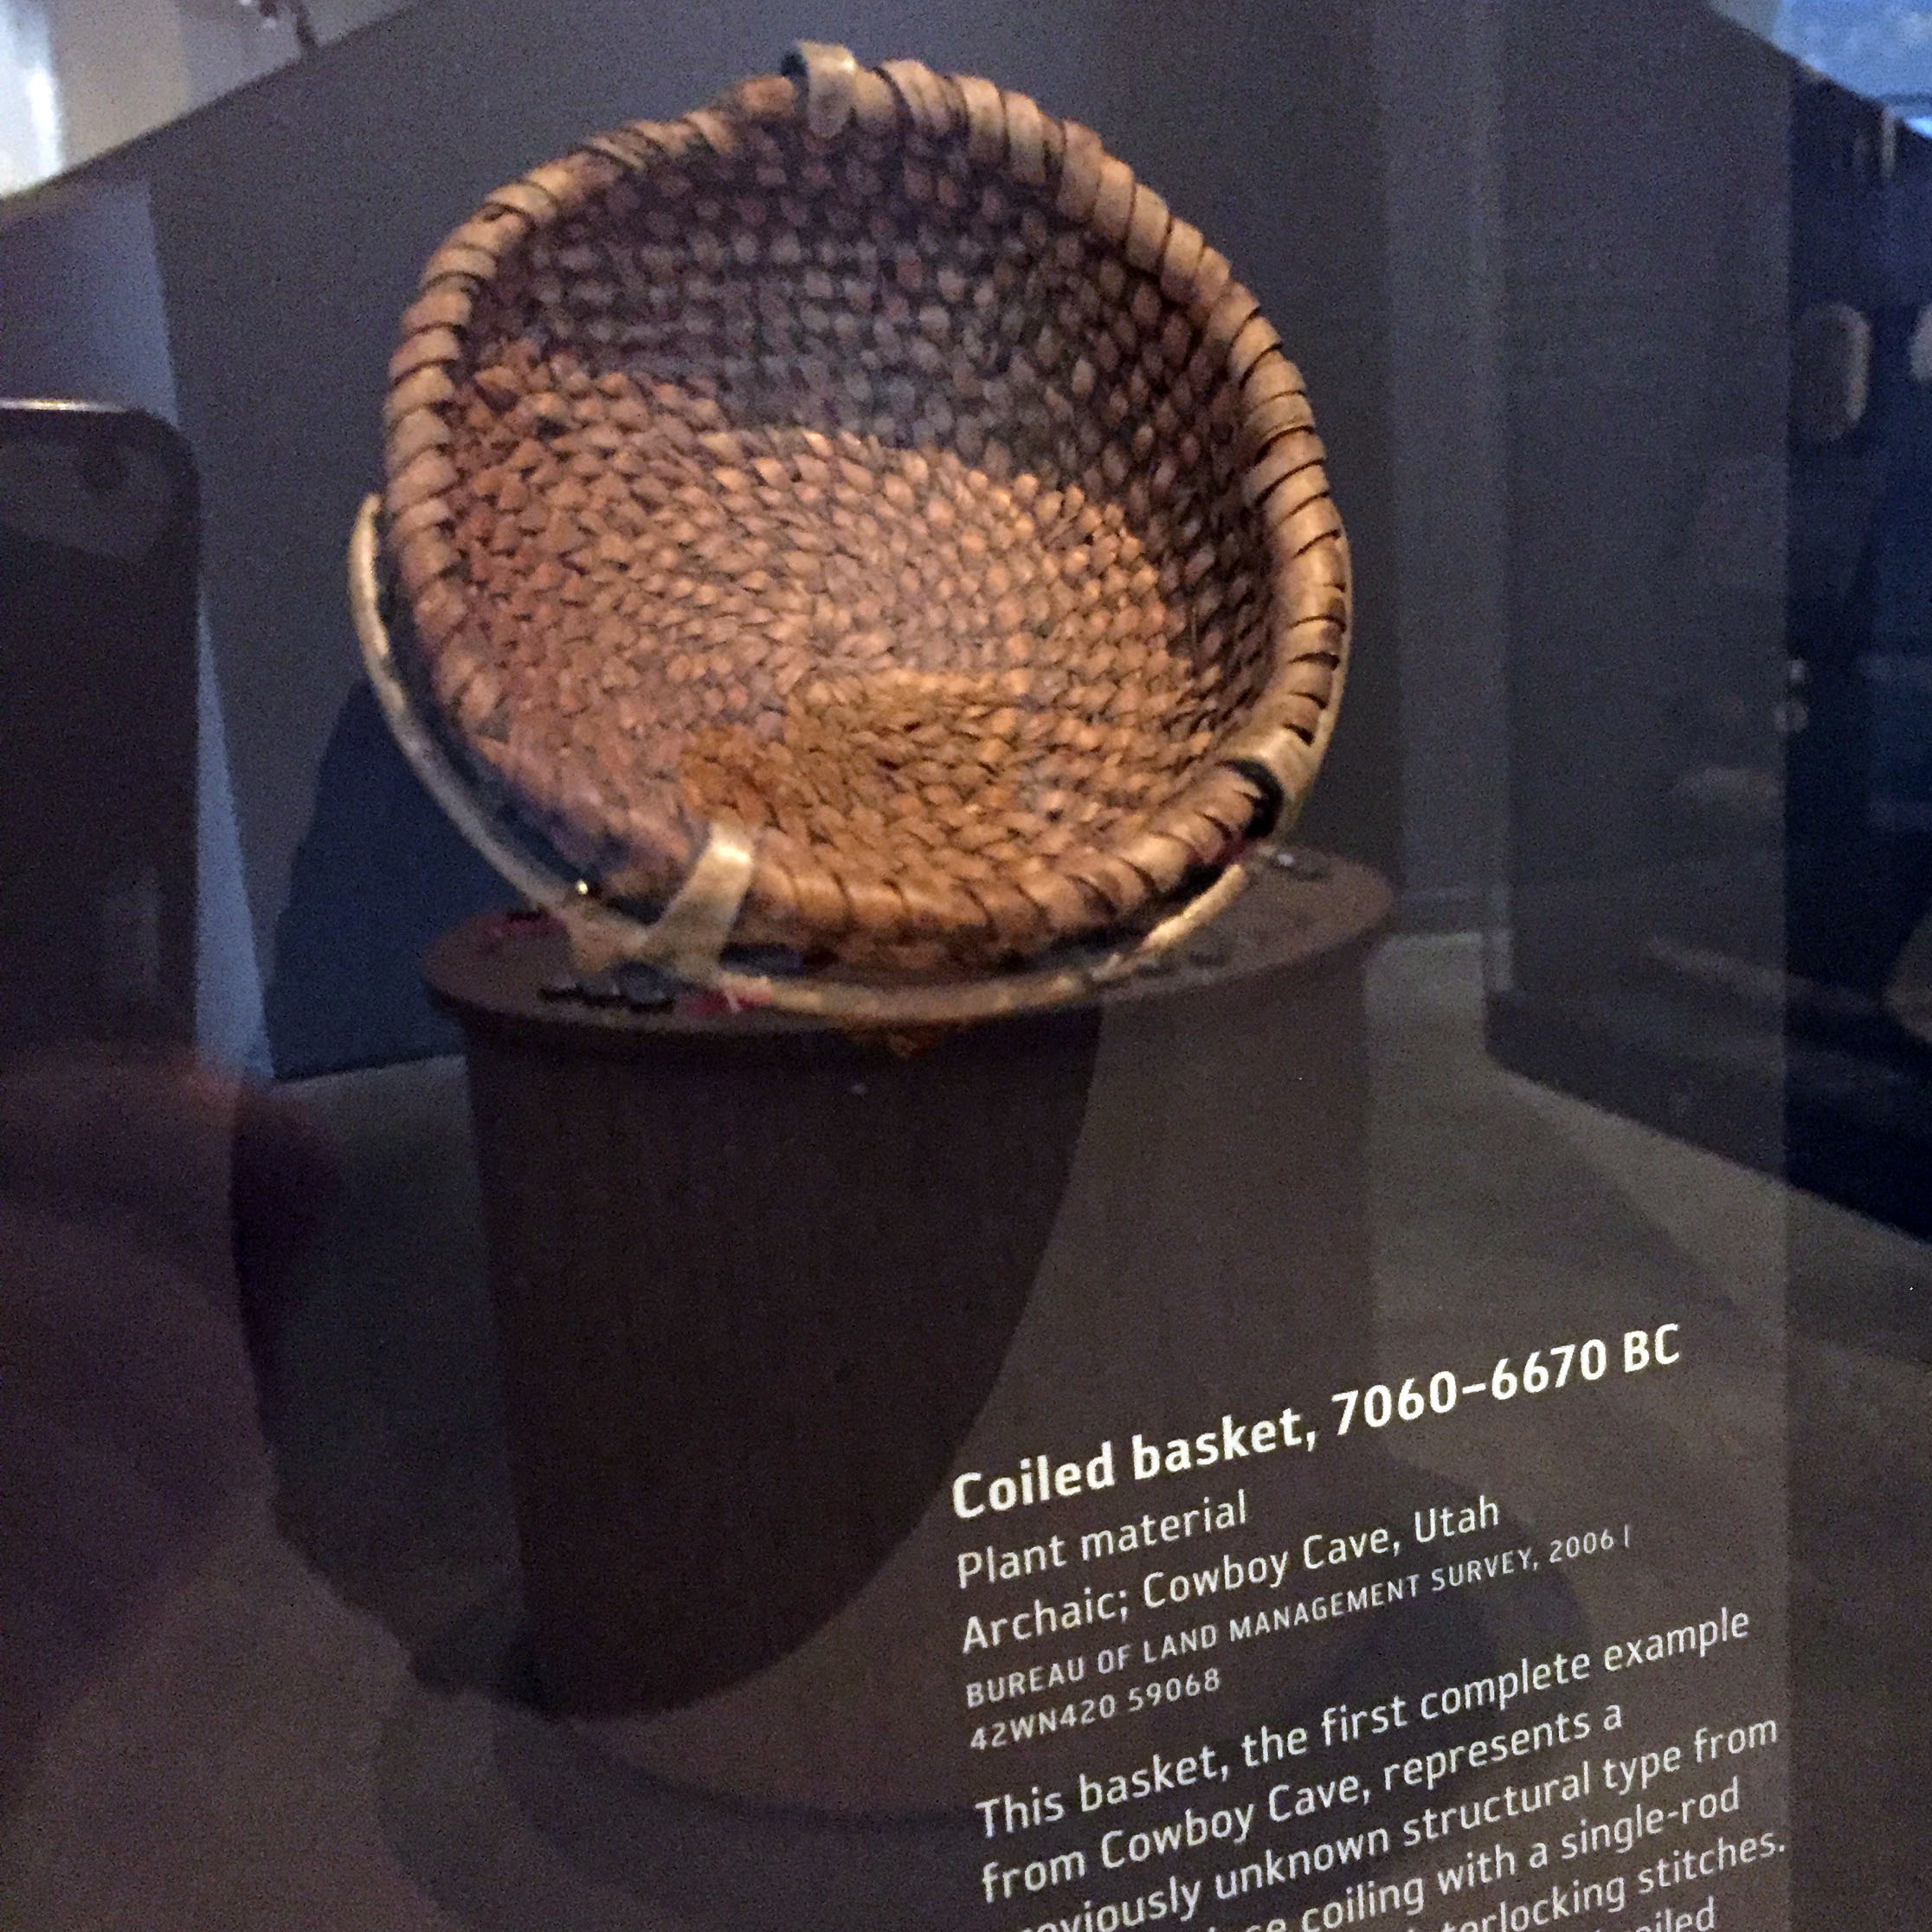 Image of a woven basket